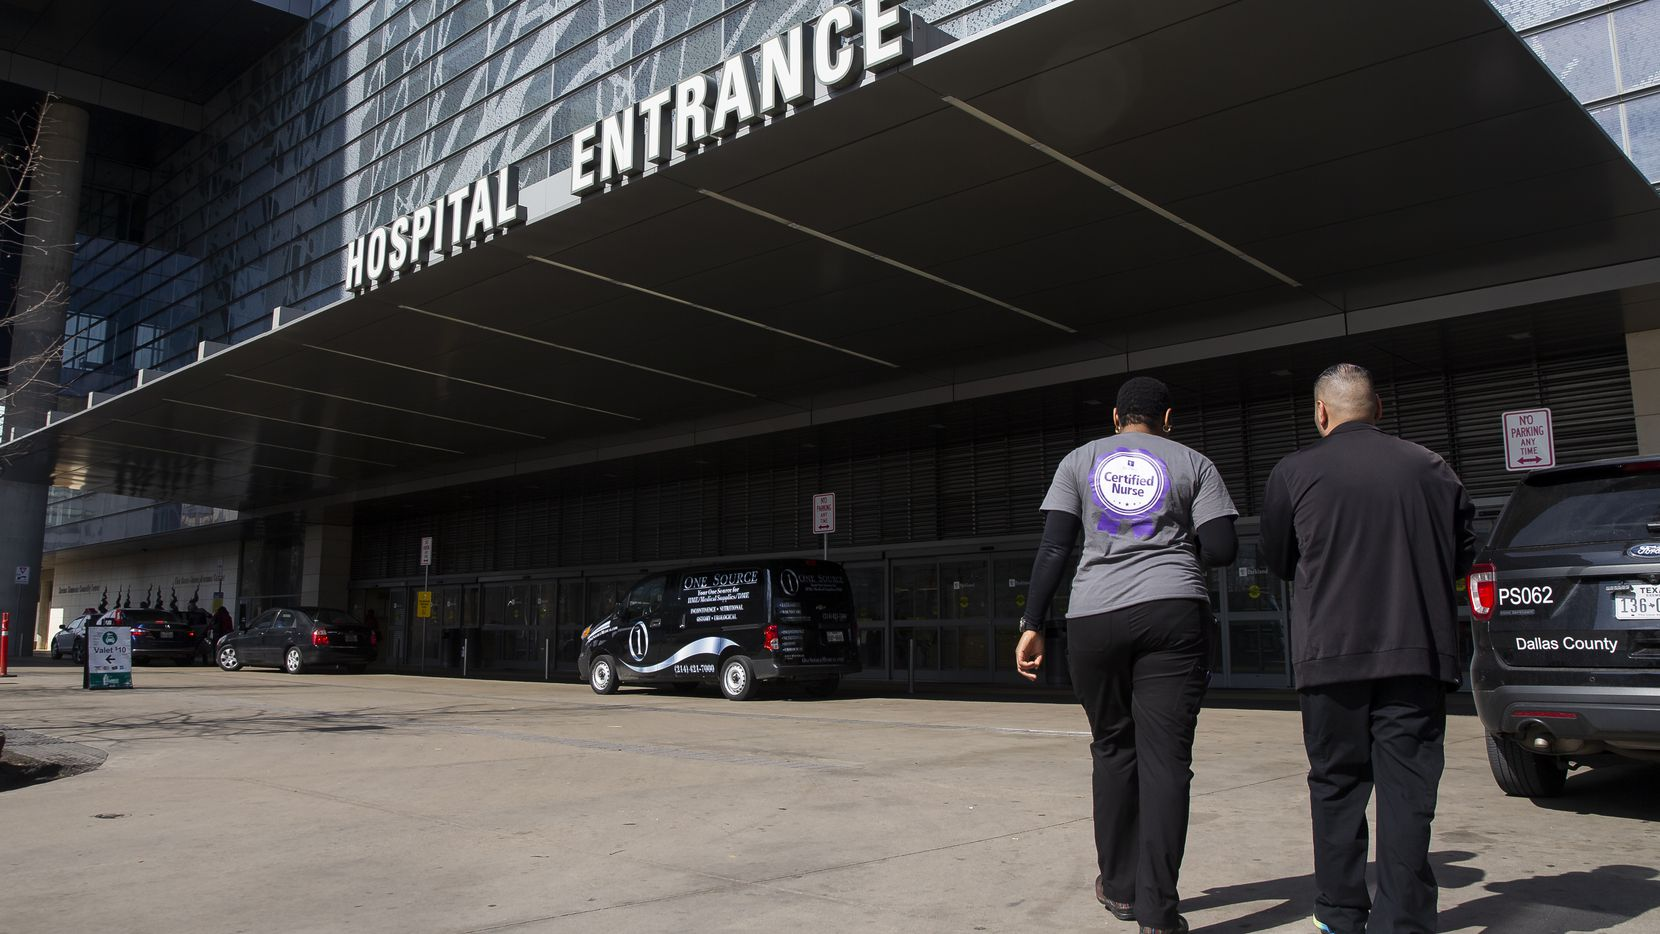 Parkland Memorial Hospital, shown Friday Jan. 31, 2020 in Dallas, where a man charged with assault was taken after he claimed to Dallas County jail officials to be sick with the coronavirus after traveling abroad.